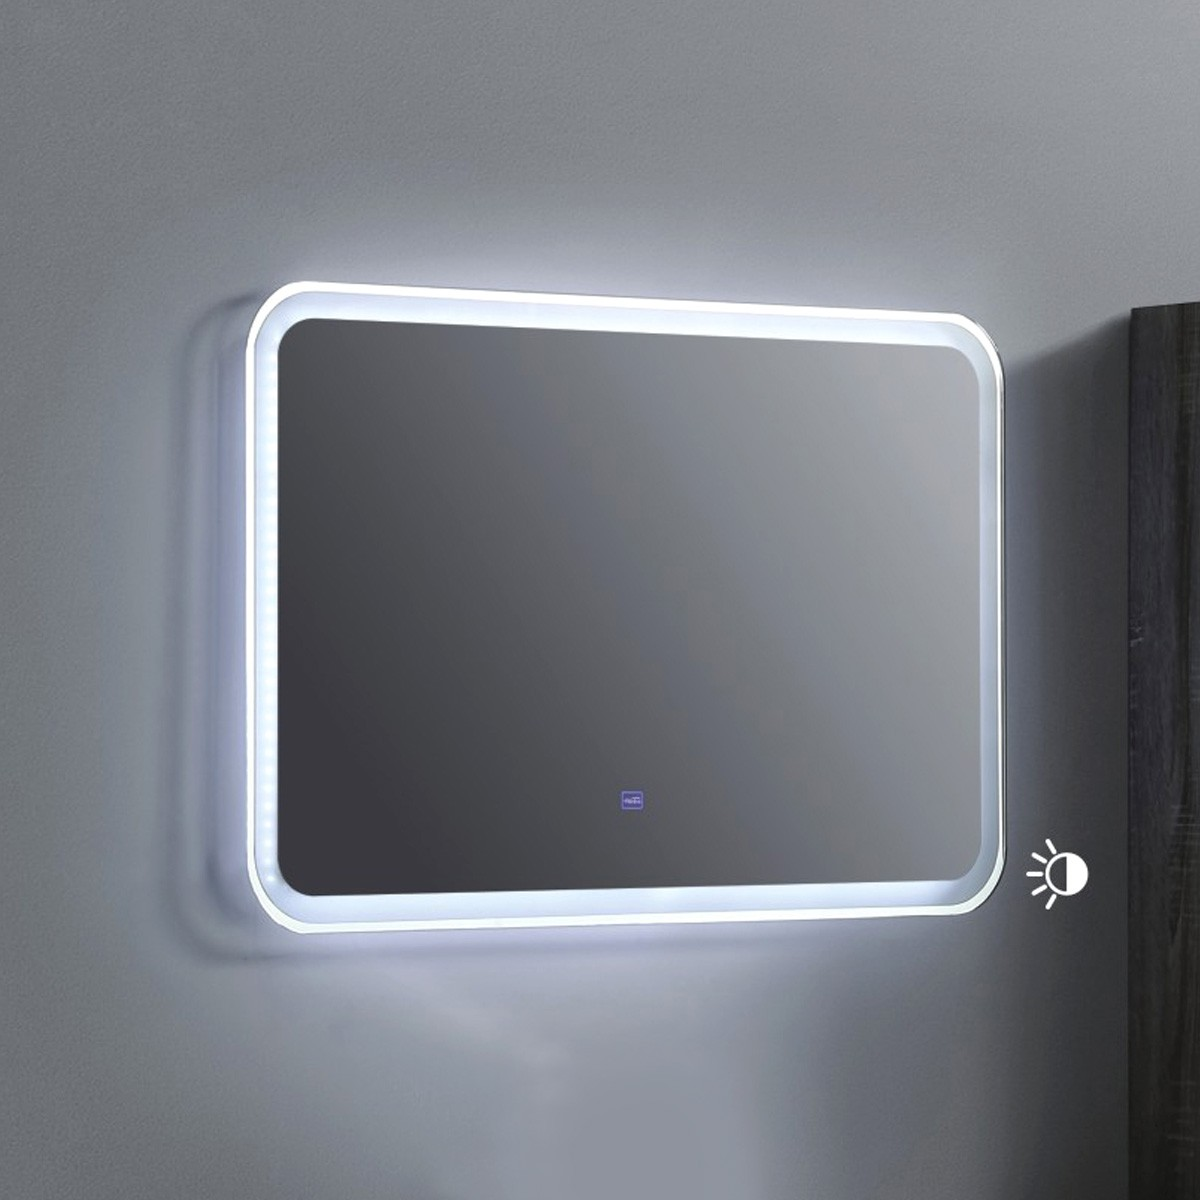 36 x 24 In. Bathroom Vanity LED Mirror with Touch Button (ST-900-M)